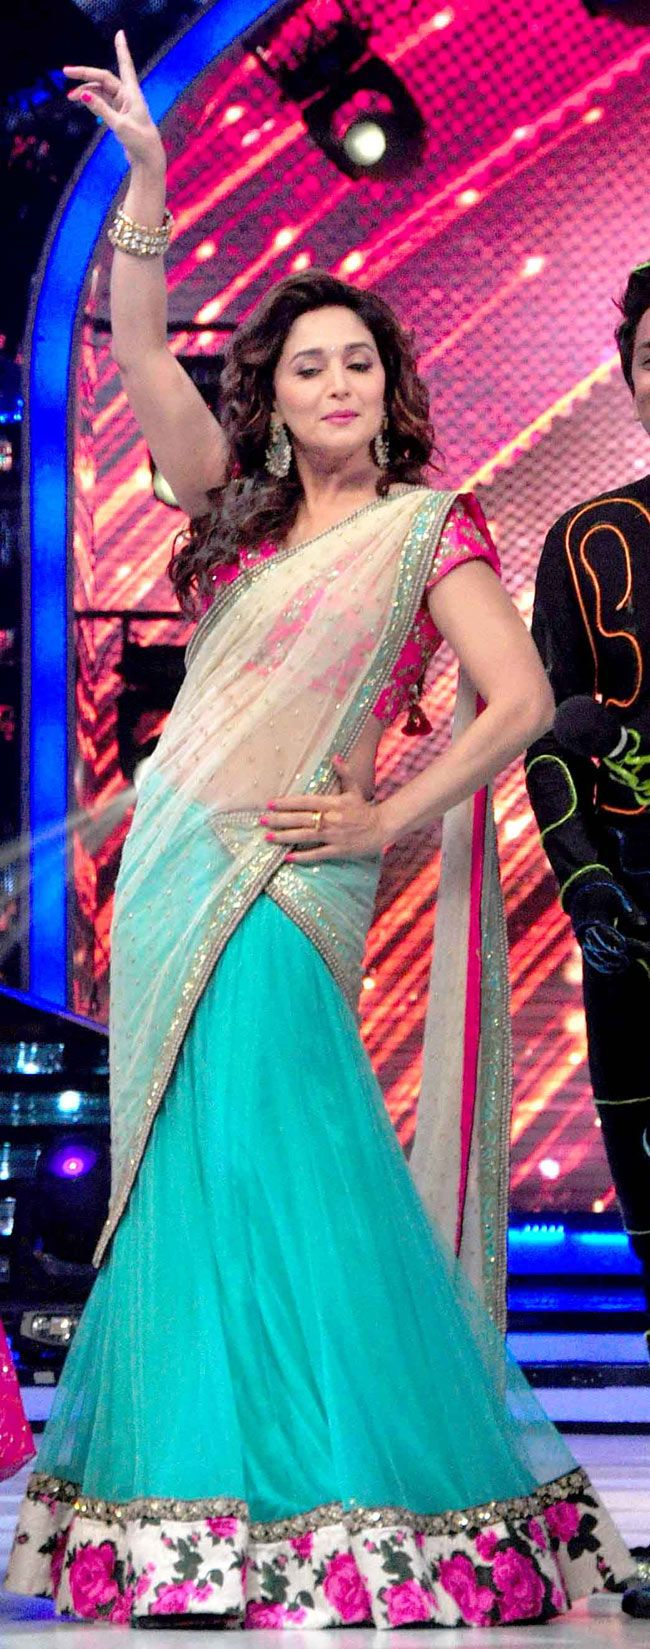 Madhuri Dixit shows off her dance moves : Photos: Sonam Kapoor, Fawad Khan on 'Jhalak Dikkhla Jaa'